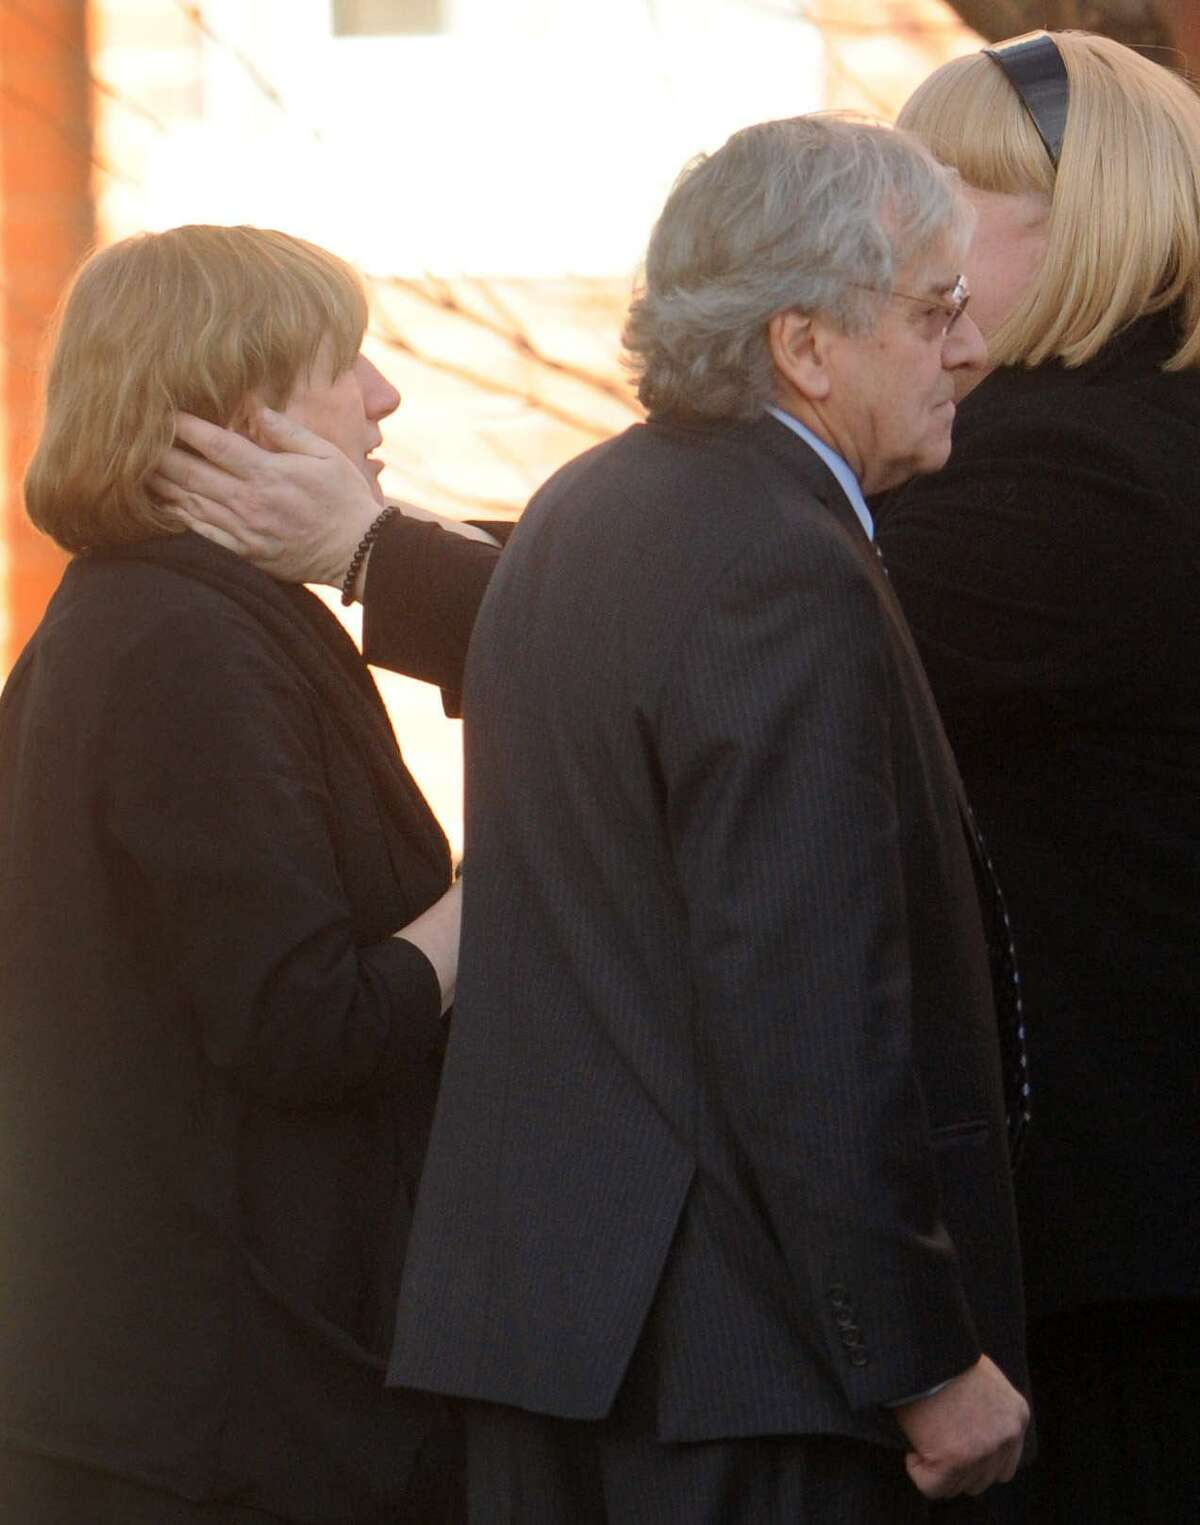 Teresa Rousseau, left, is comforted with conversation by a mourner, as Gilles Rousseau, second from left, waits with his ex-wife after a memorial service for their daughter Lauren Rousseau at the First Congregational Church in Danbury, Conn. Thursday, December 20, 2012. Rousseau was a substitute teacher killed by a gunman that also claimed the lives of 5 other educators and 20 children at the Sandy Hook Elementary School shooting Friday, December 15, 2012. Lauren and Gilles Rousseau are divorced. Photo by Peter Hvizdak / New Haven Register